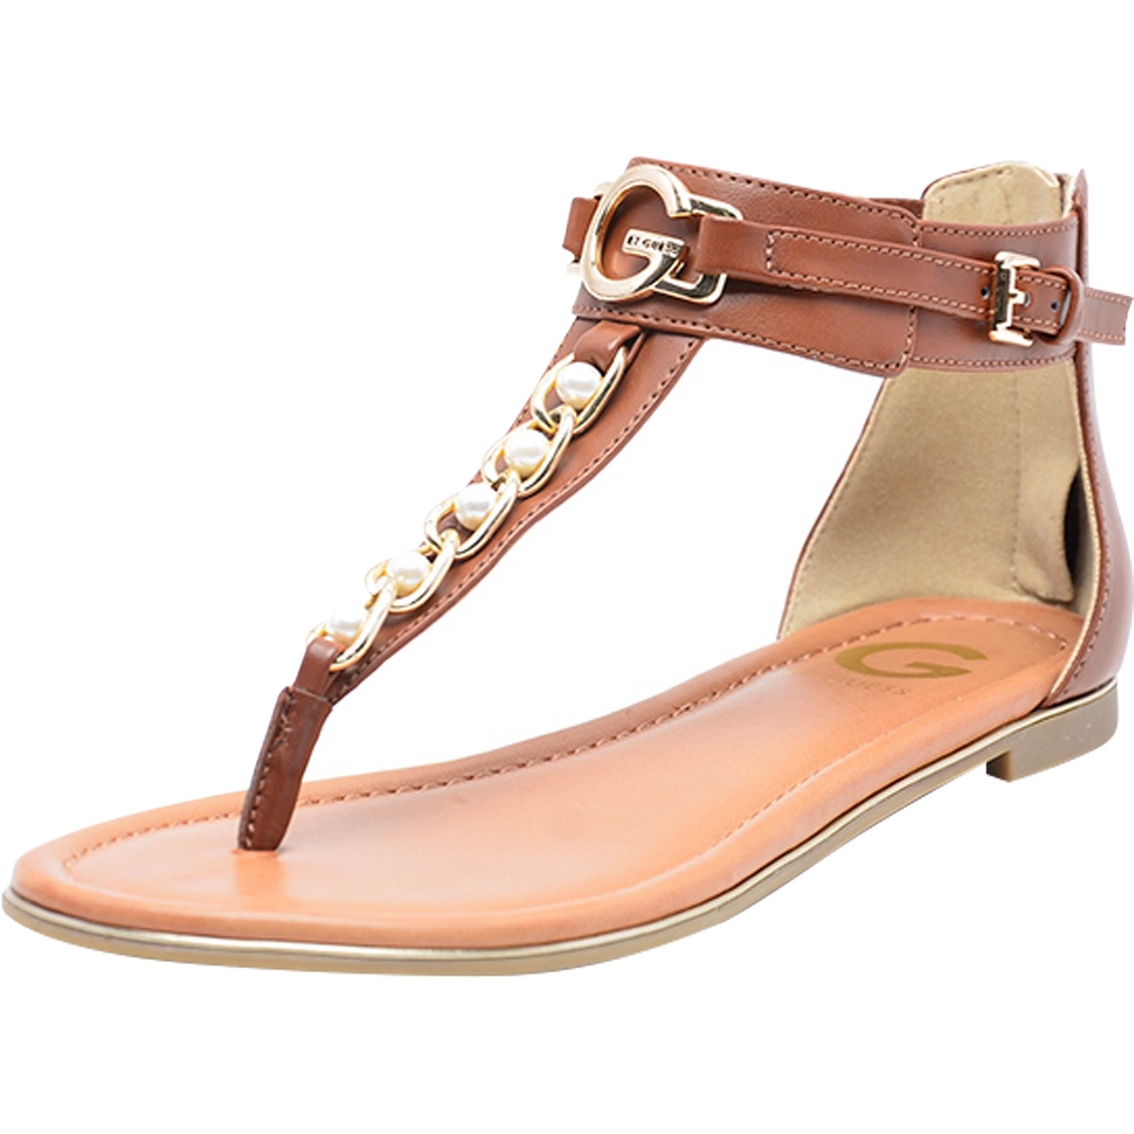 2c67722fae5 G By Guess Direck Pearl Ornament Flat Thong Sandals